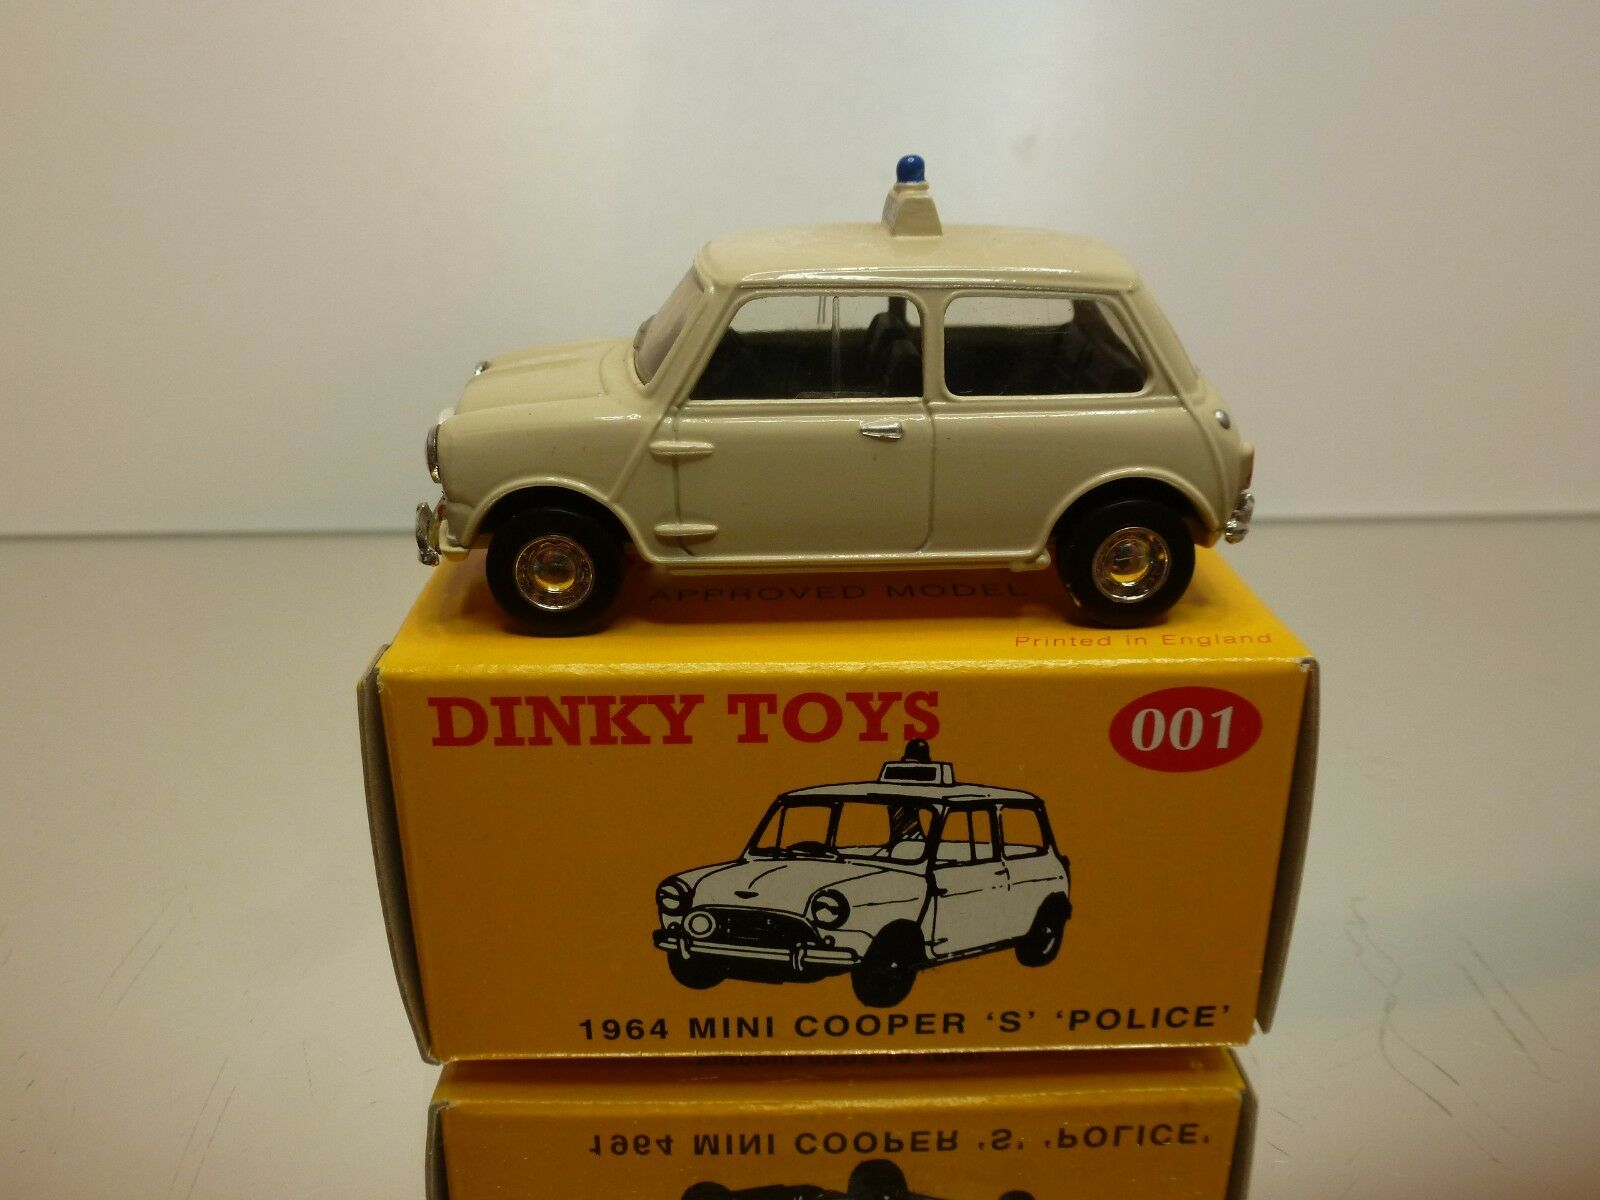 DINKY TOYS CODE 2 001 MINI COOPER S 1964 POLICE - OFF-blanc 1 43 - EXCELLENT IB